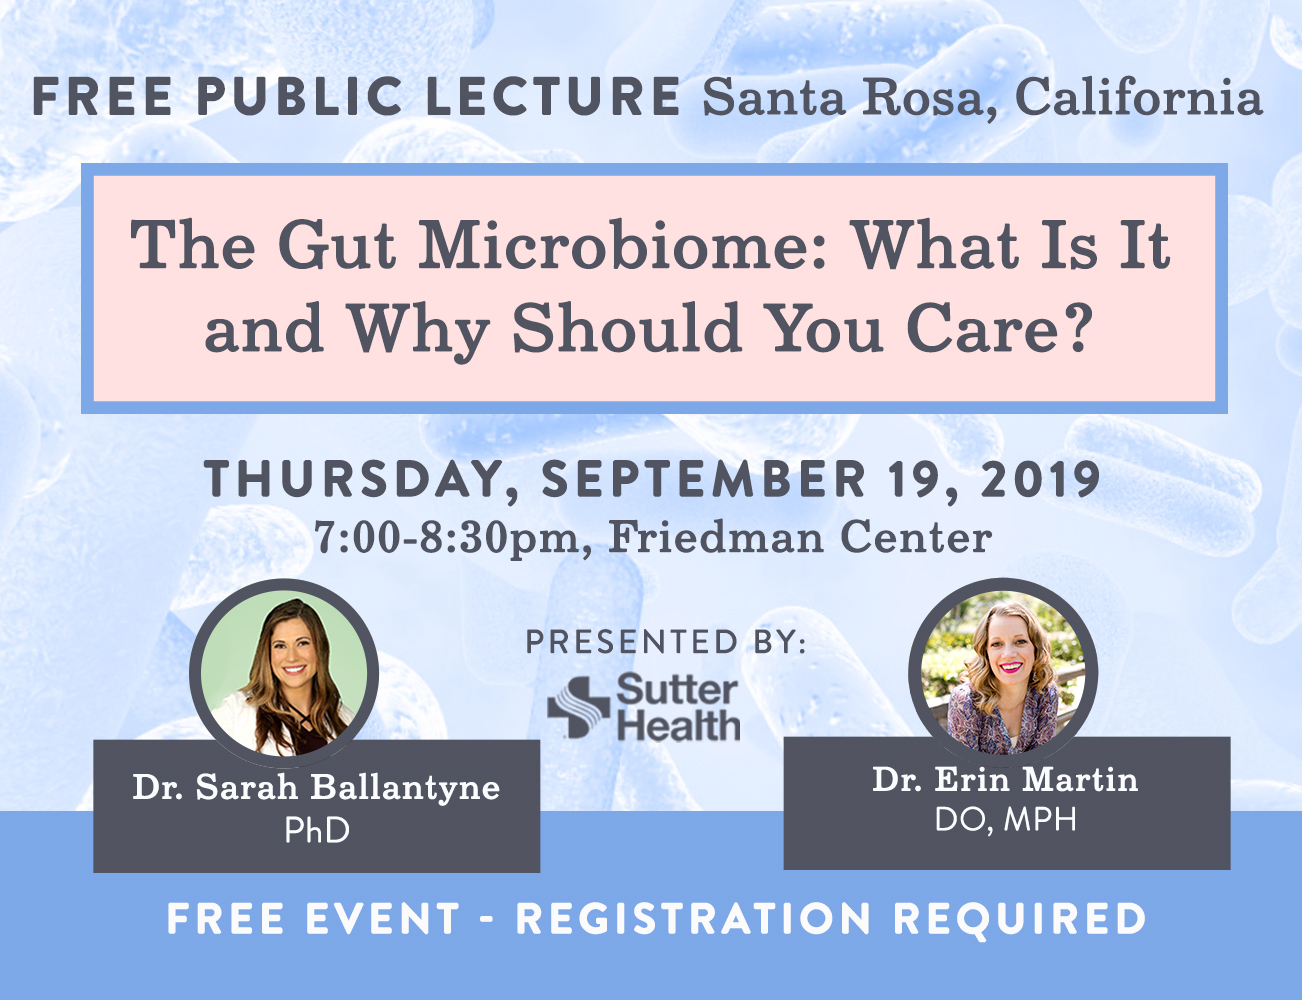 Free Public Lecture on the Gut Microbiome – September 19